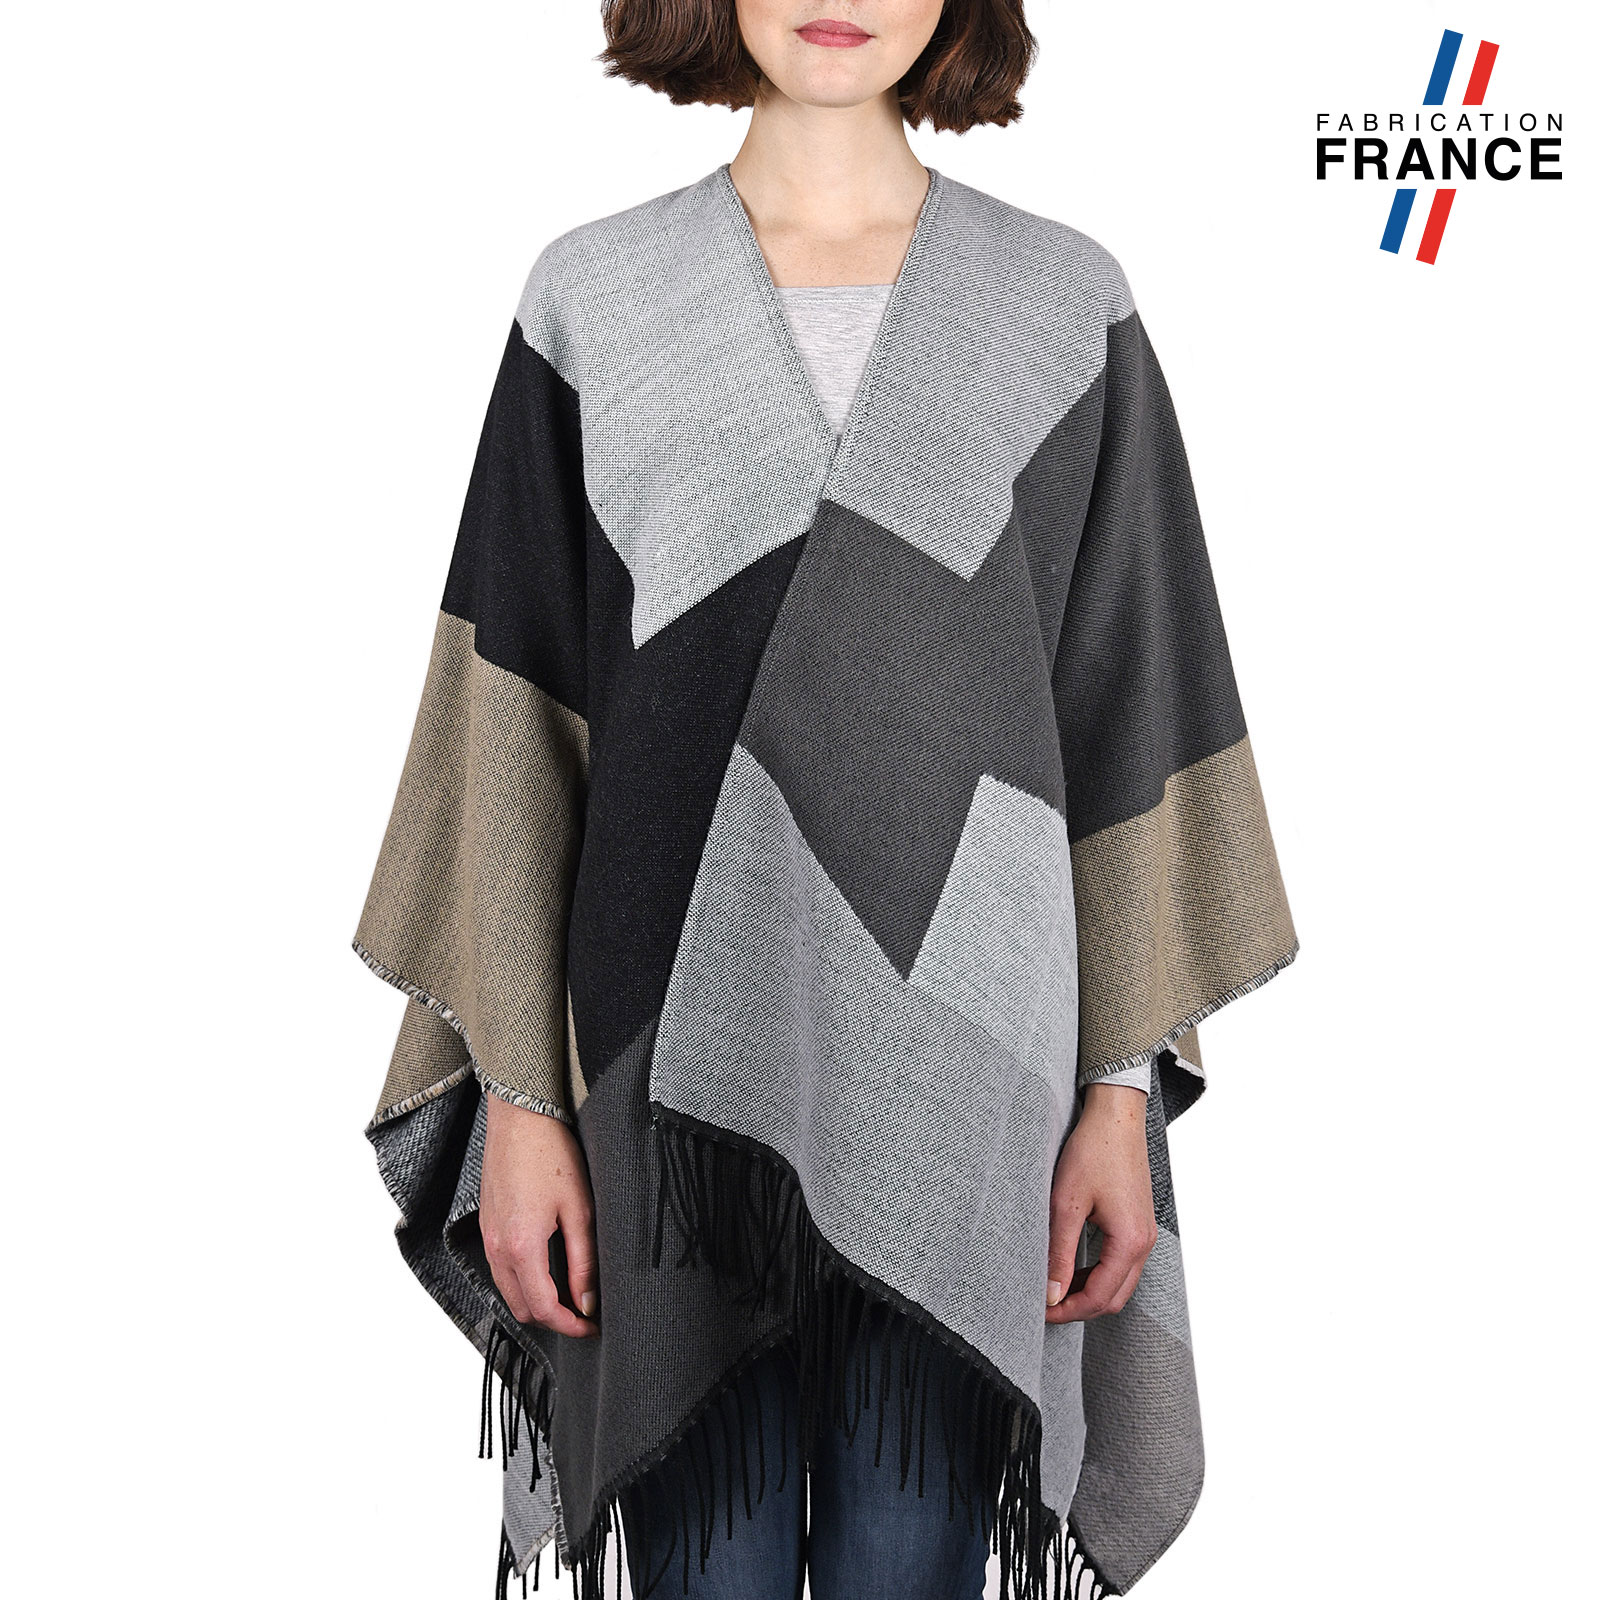 echarpe femme effet poncho foulard femme biface style couverture. Black Bedroom Furniture Sets. Home Design Ideas